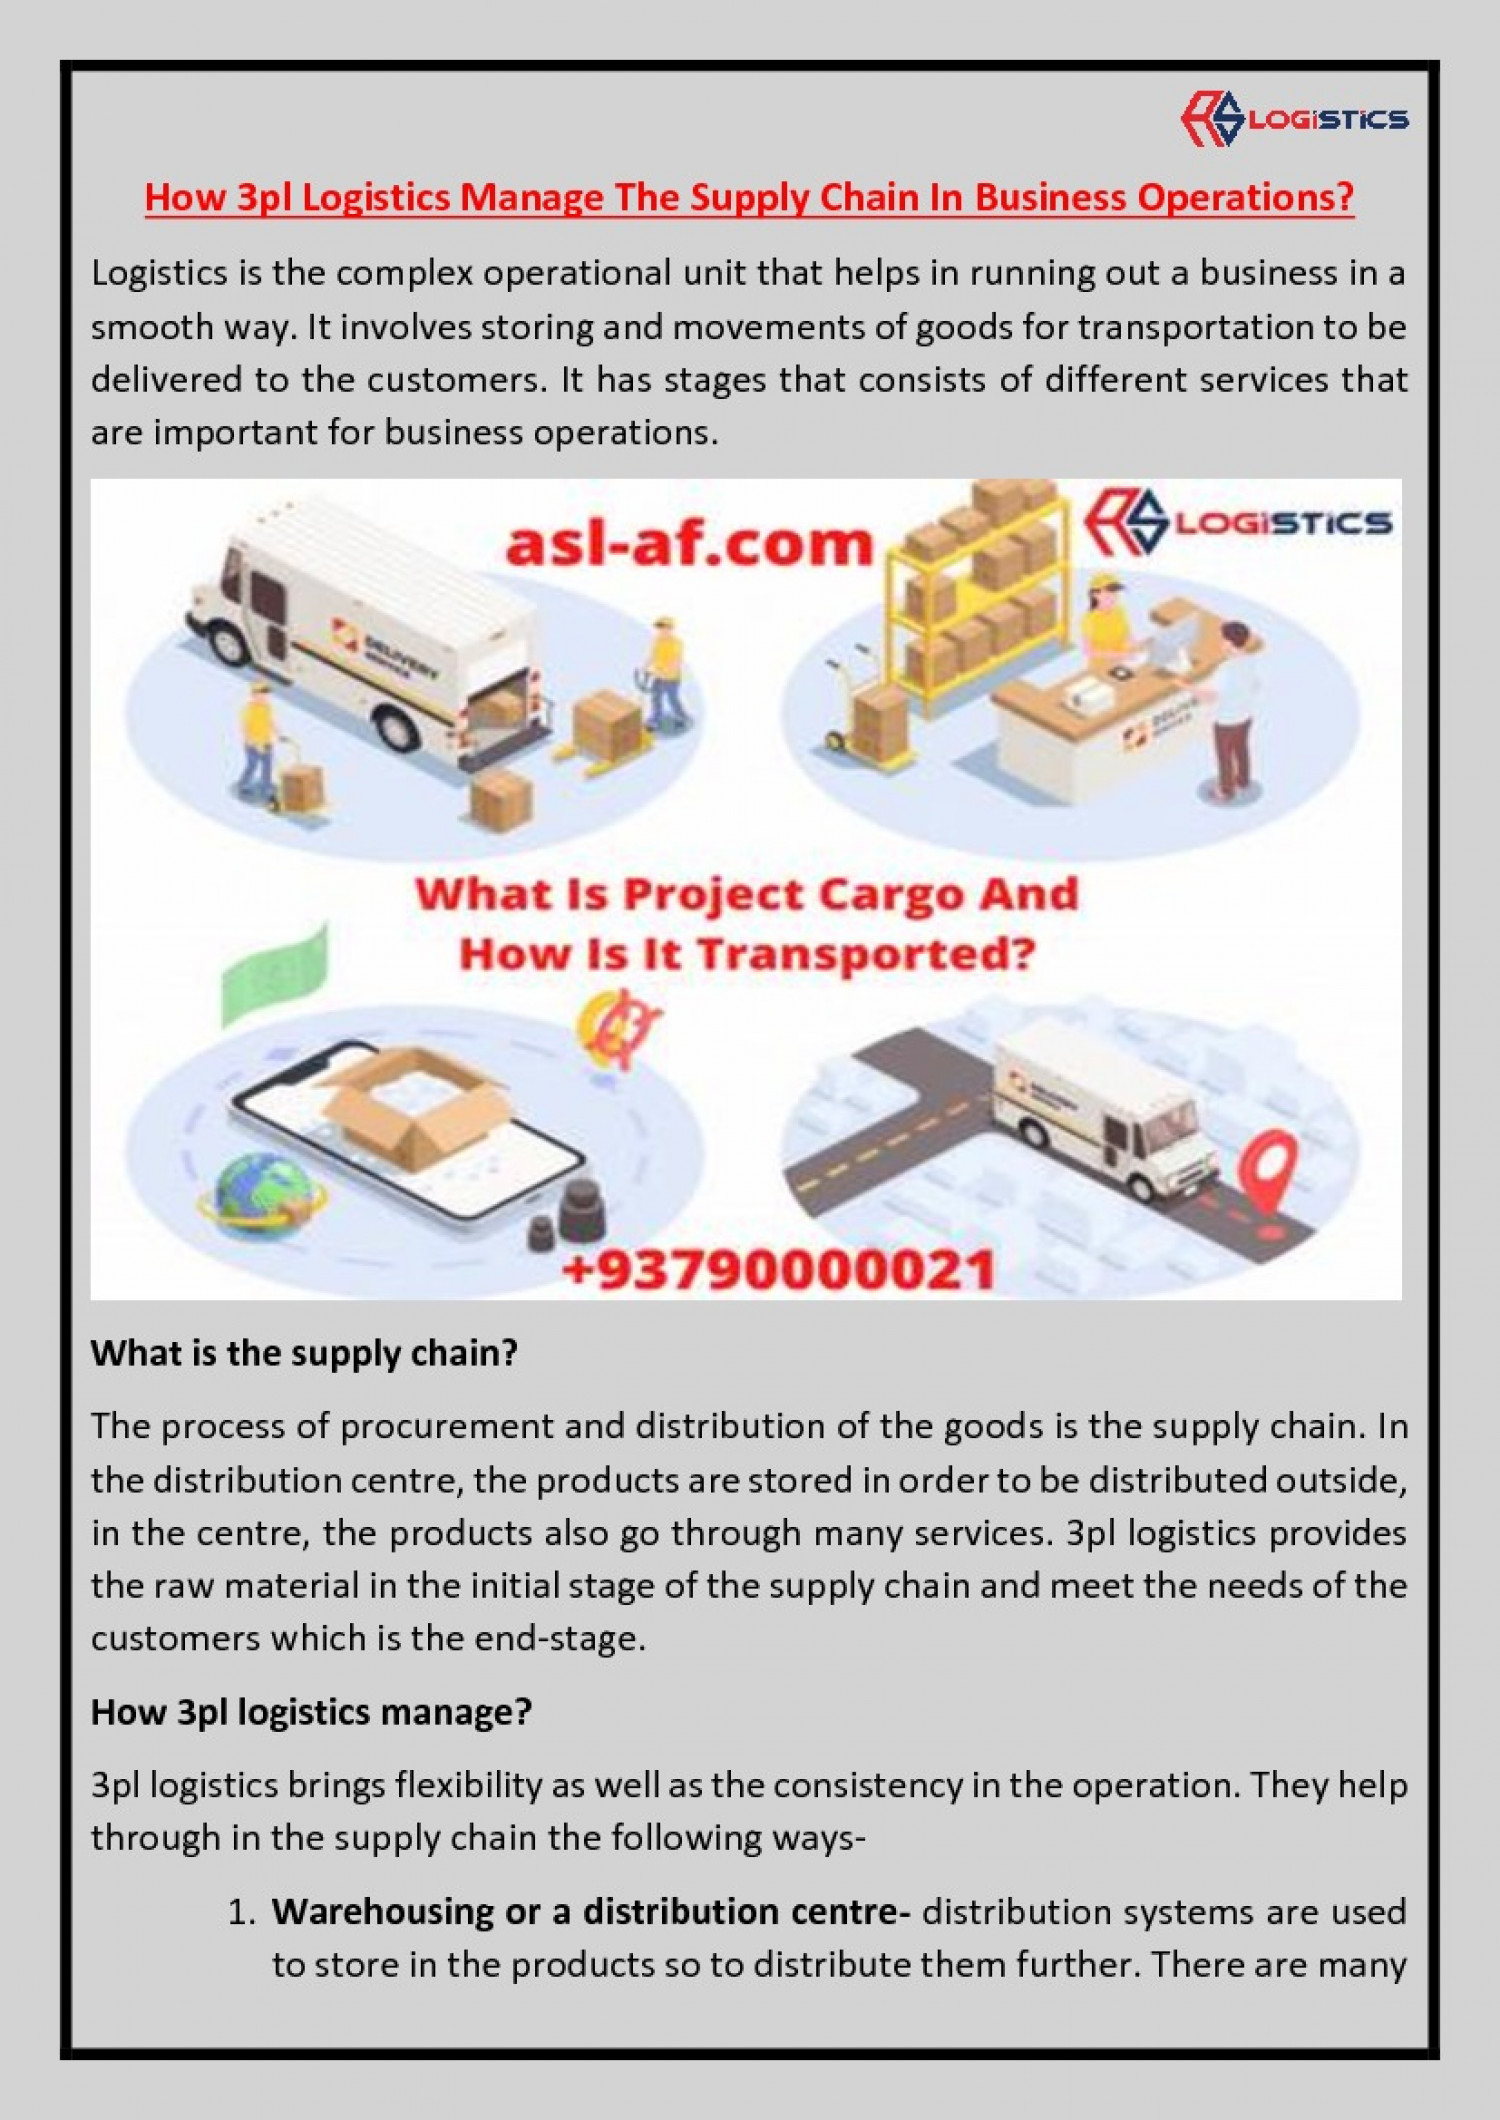 How 3pl Logistics Manage The Supply Chain In Business Operations? Infographic